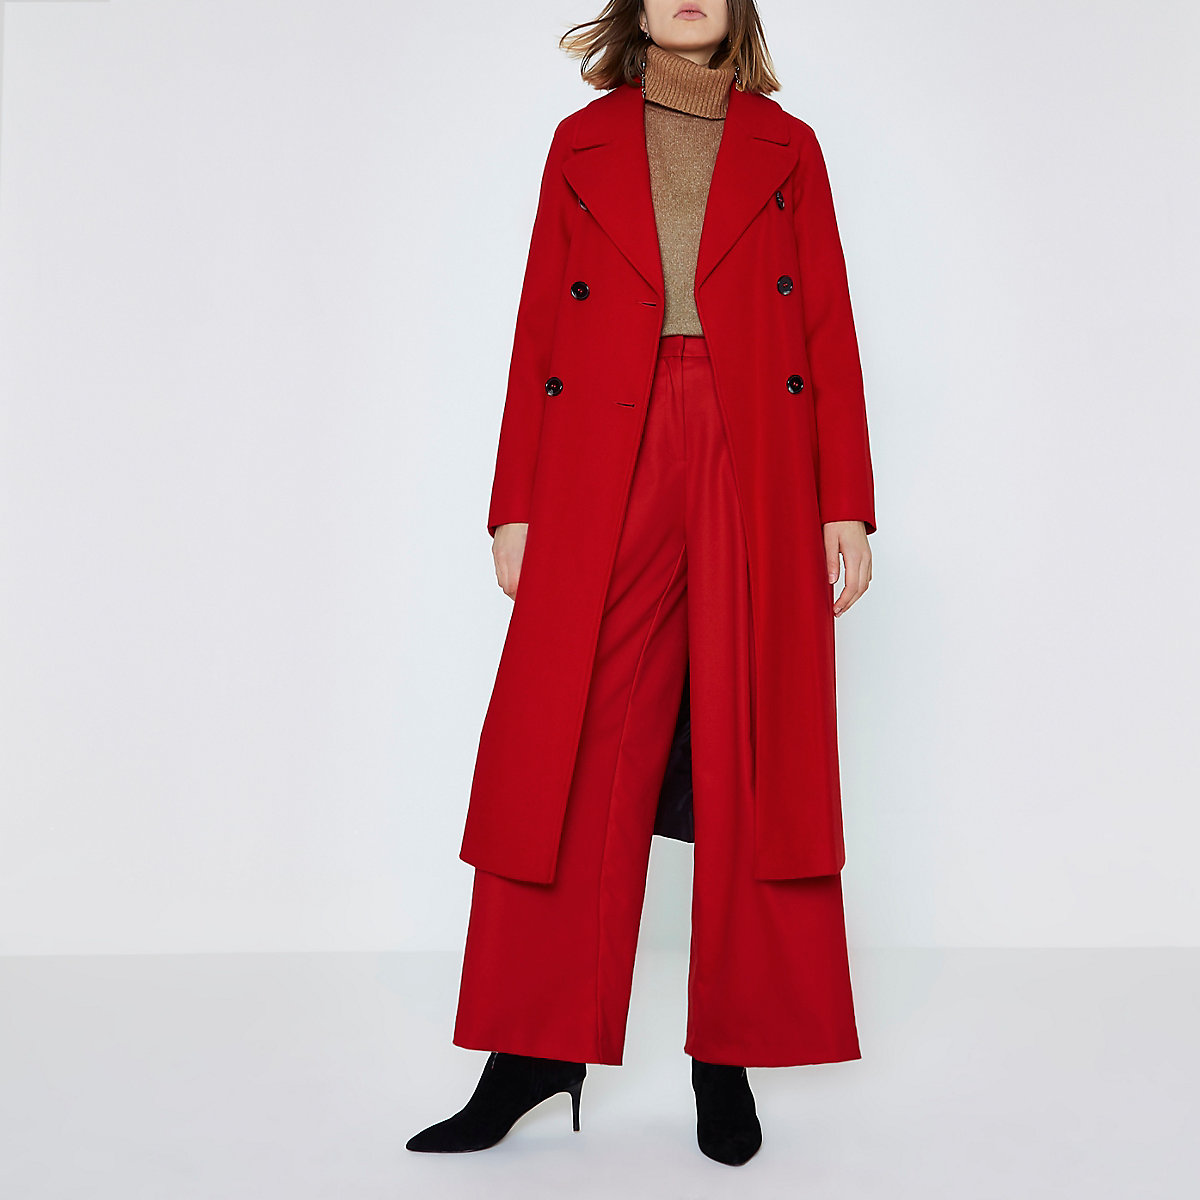 Bright red long double breasted coat